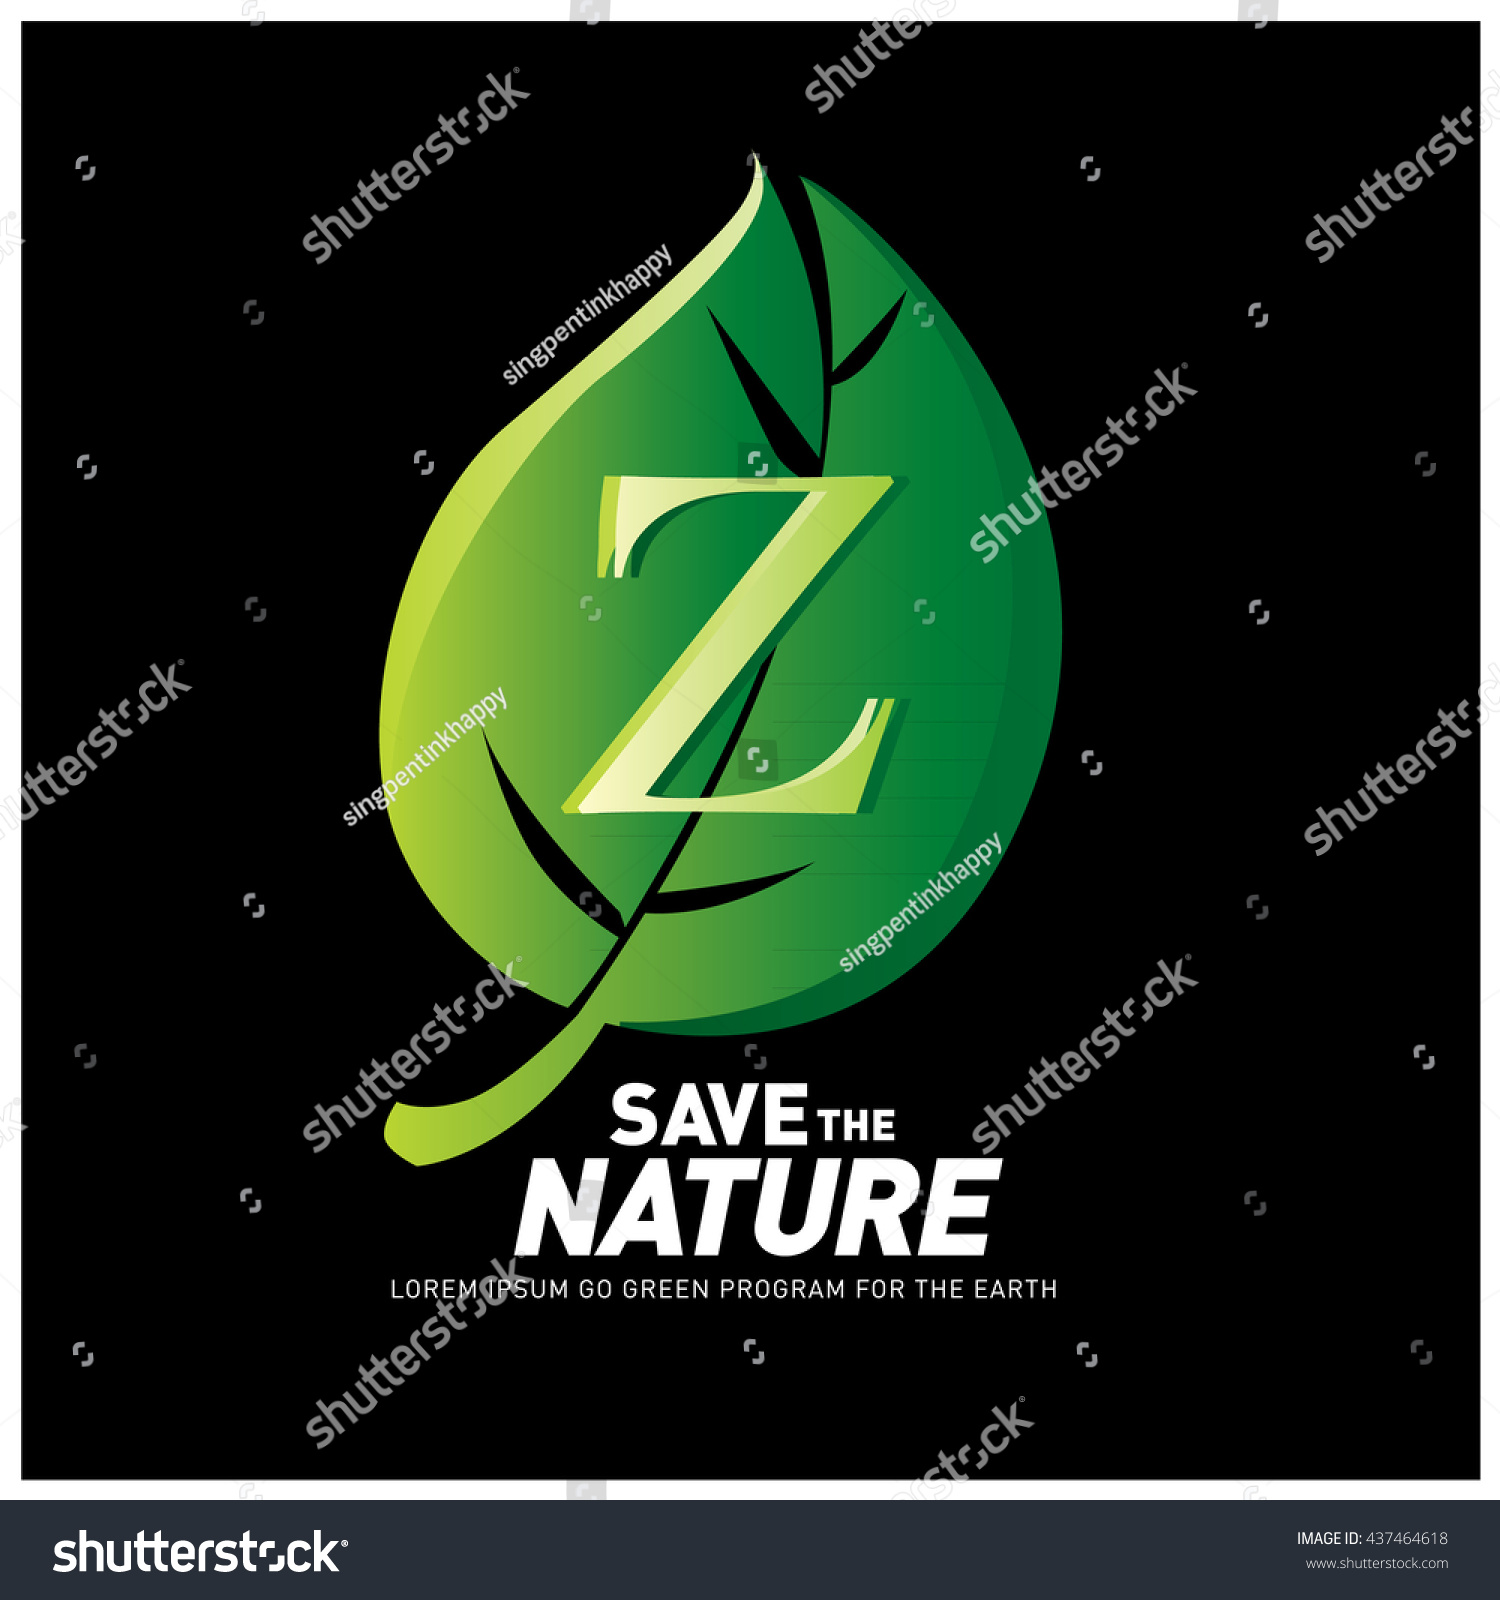 Poster design nature - Letter Z Vector Logo And Icon Save The Nature Go Green Poster Design Ecology